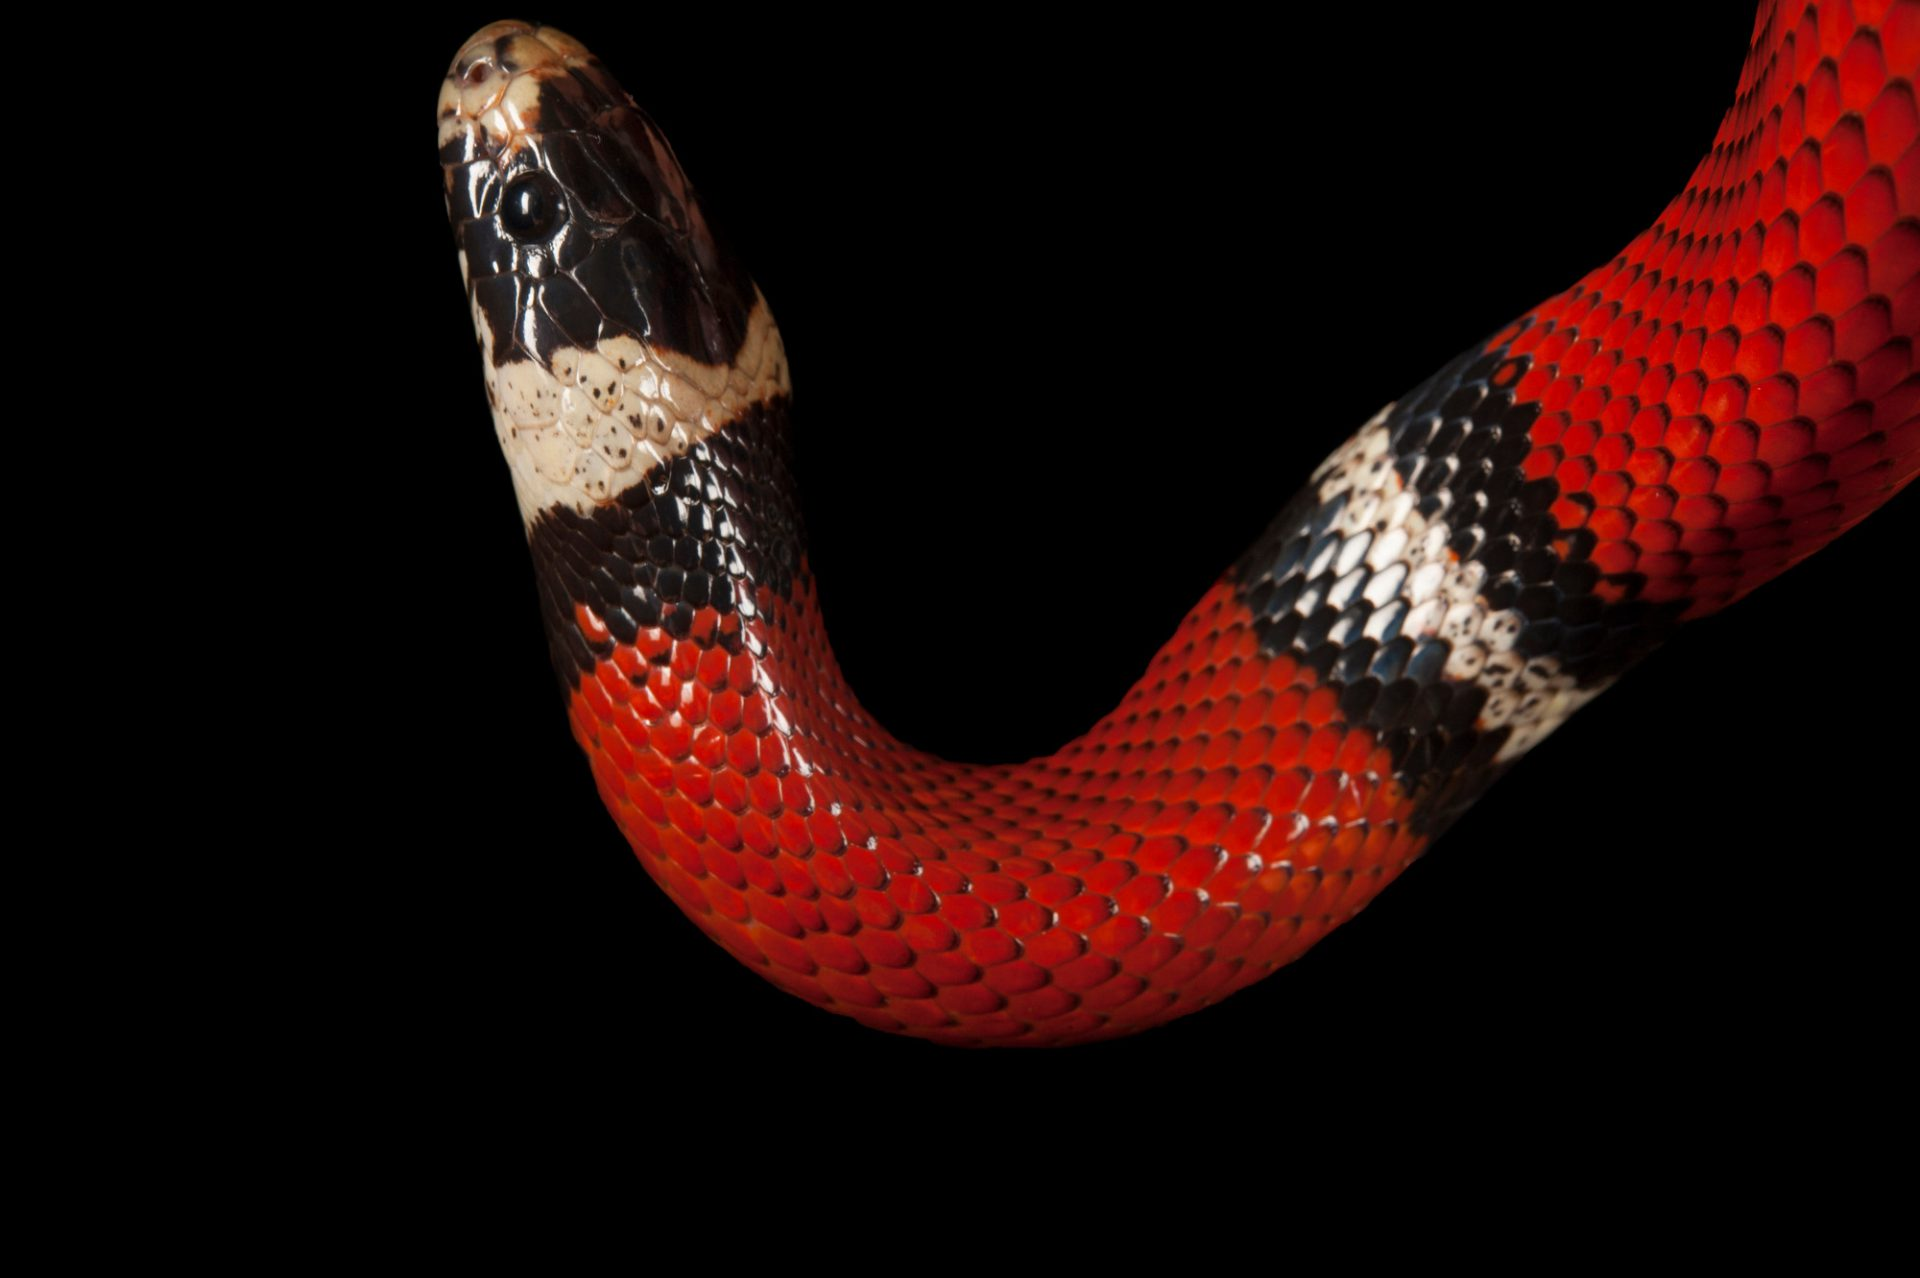 A sinaloan milksnake (Lampropeltis triangulum sinaloae) from the Gladys Porter Zoo in Brownsville, Texas.